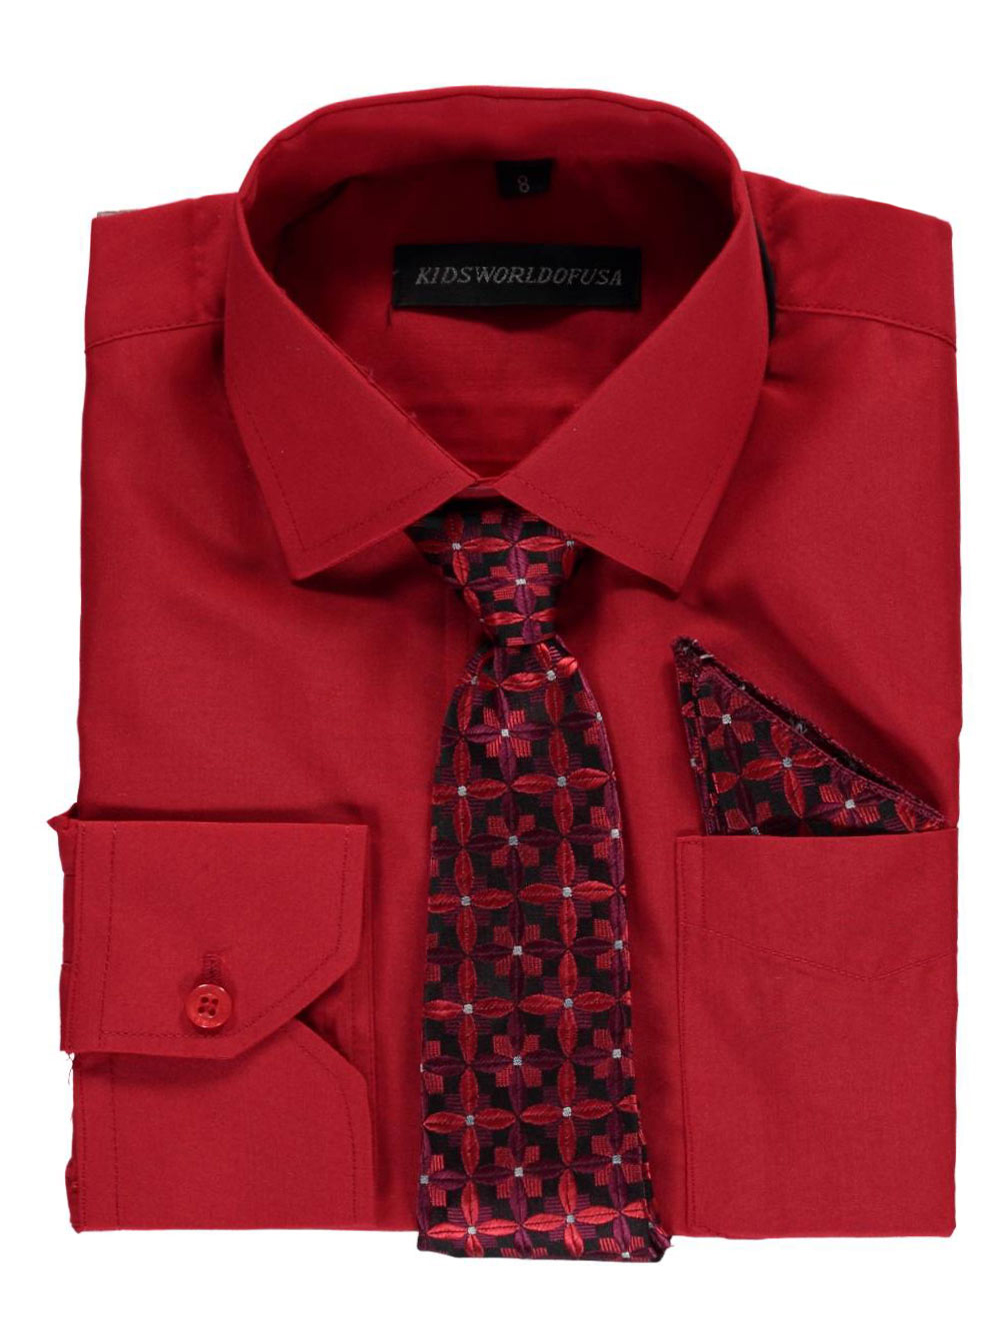 Kids World Big Boys' Dress Shirt with Accessories (Sizes 8 - 20) - red, 8